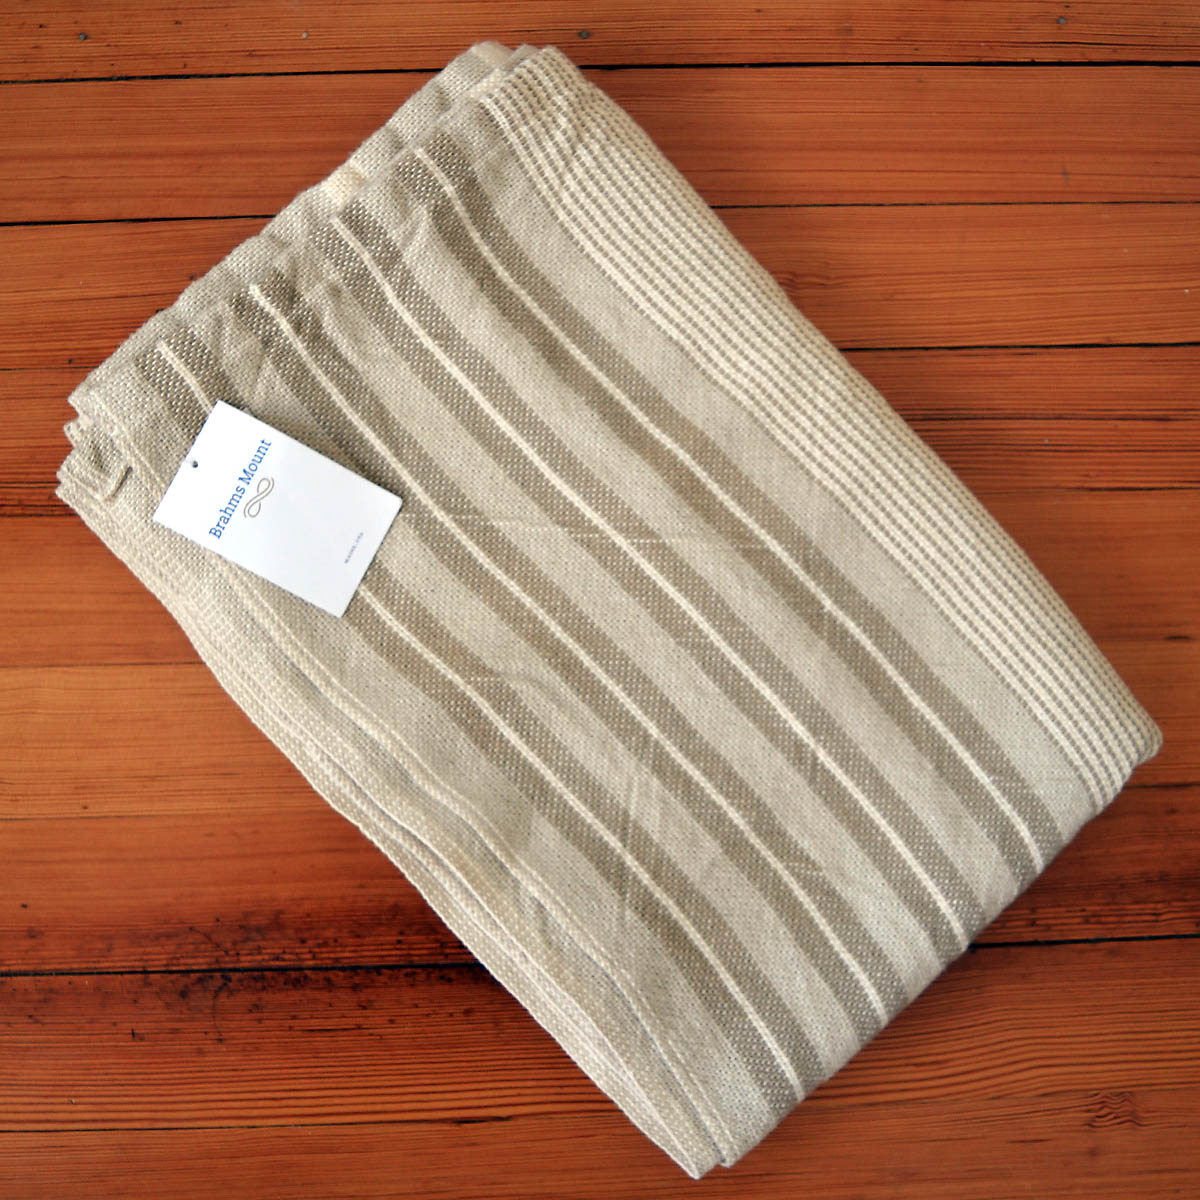 Brahms Mount Blanket - Swallowfield has generously contributed this amazingly well crafted Brhams Mount Blanket. The neutral tone features a varying stripe pattern and is the perfect addition to keep draped over a sofa or chair for those cool evenings. See more of what Swallowfield has to offer at their Main St. shop or online at swallowfieldshop.comRetail Value: $260.00